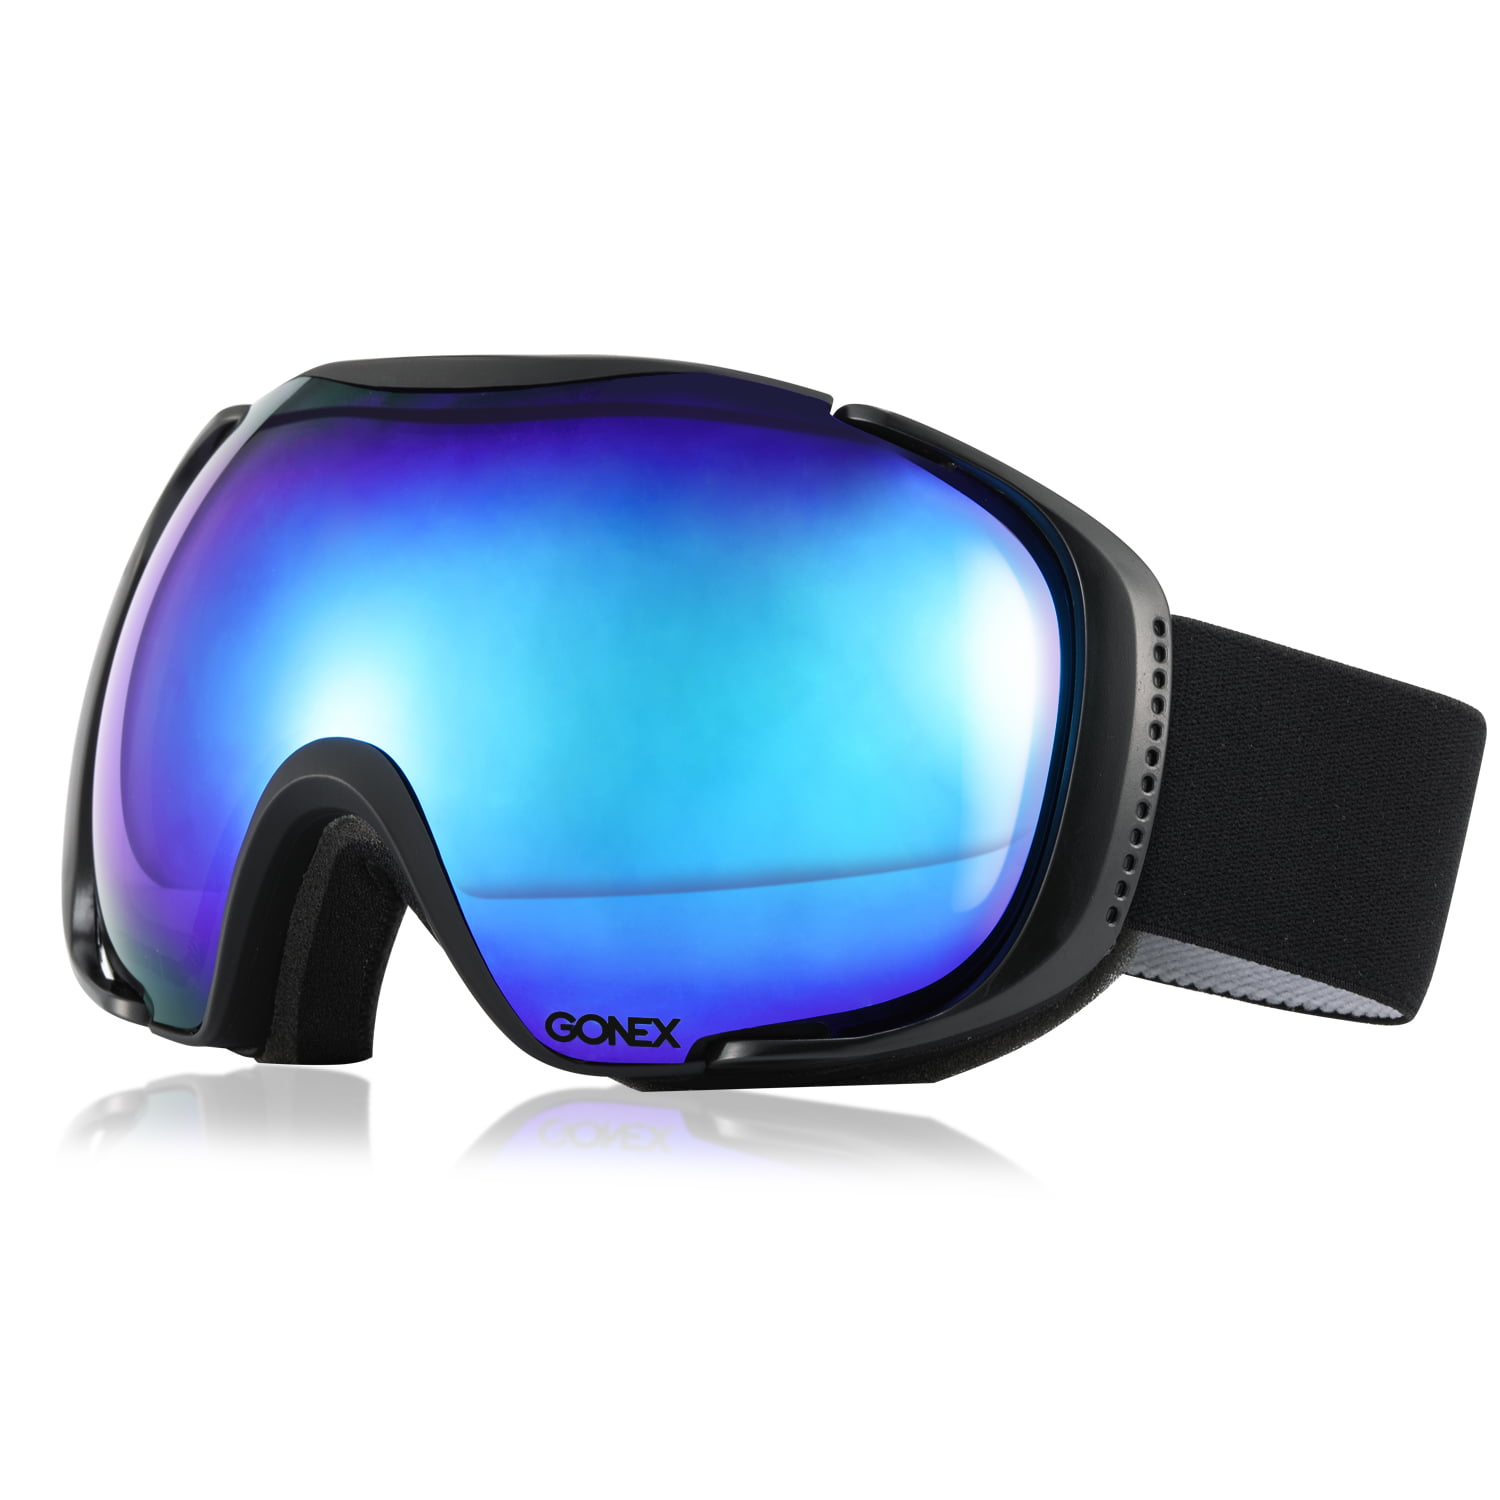 Gonex Polarized Ski Goggles Anti-fog Anti-glare Snow Goggle UV400 Protection with Oversized Double Spherical Lens by